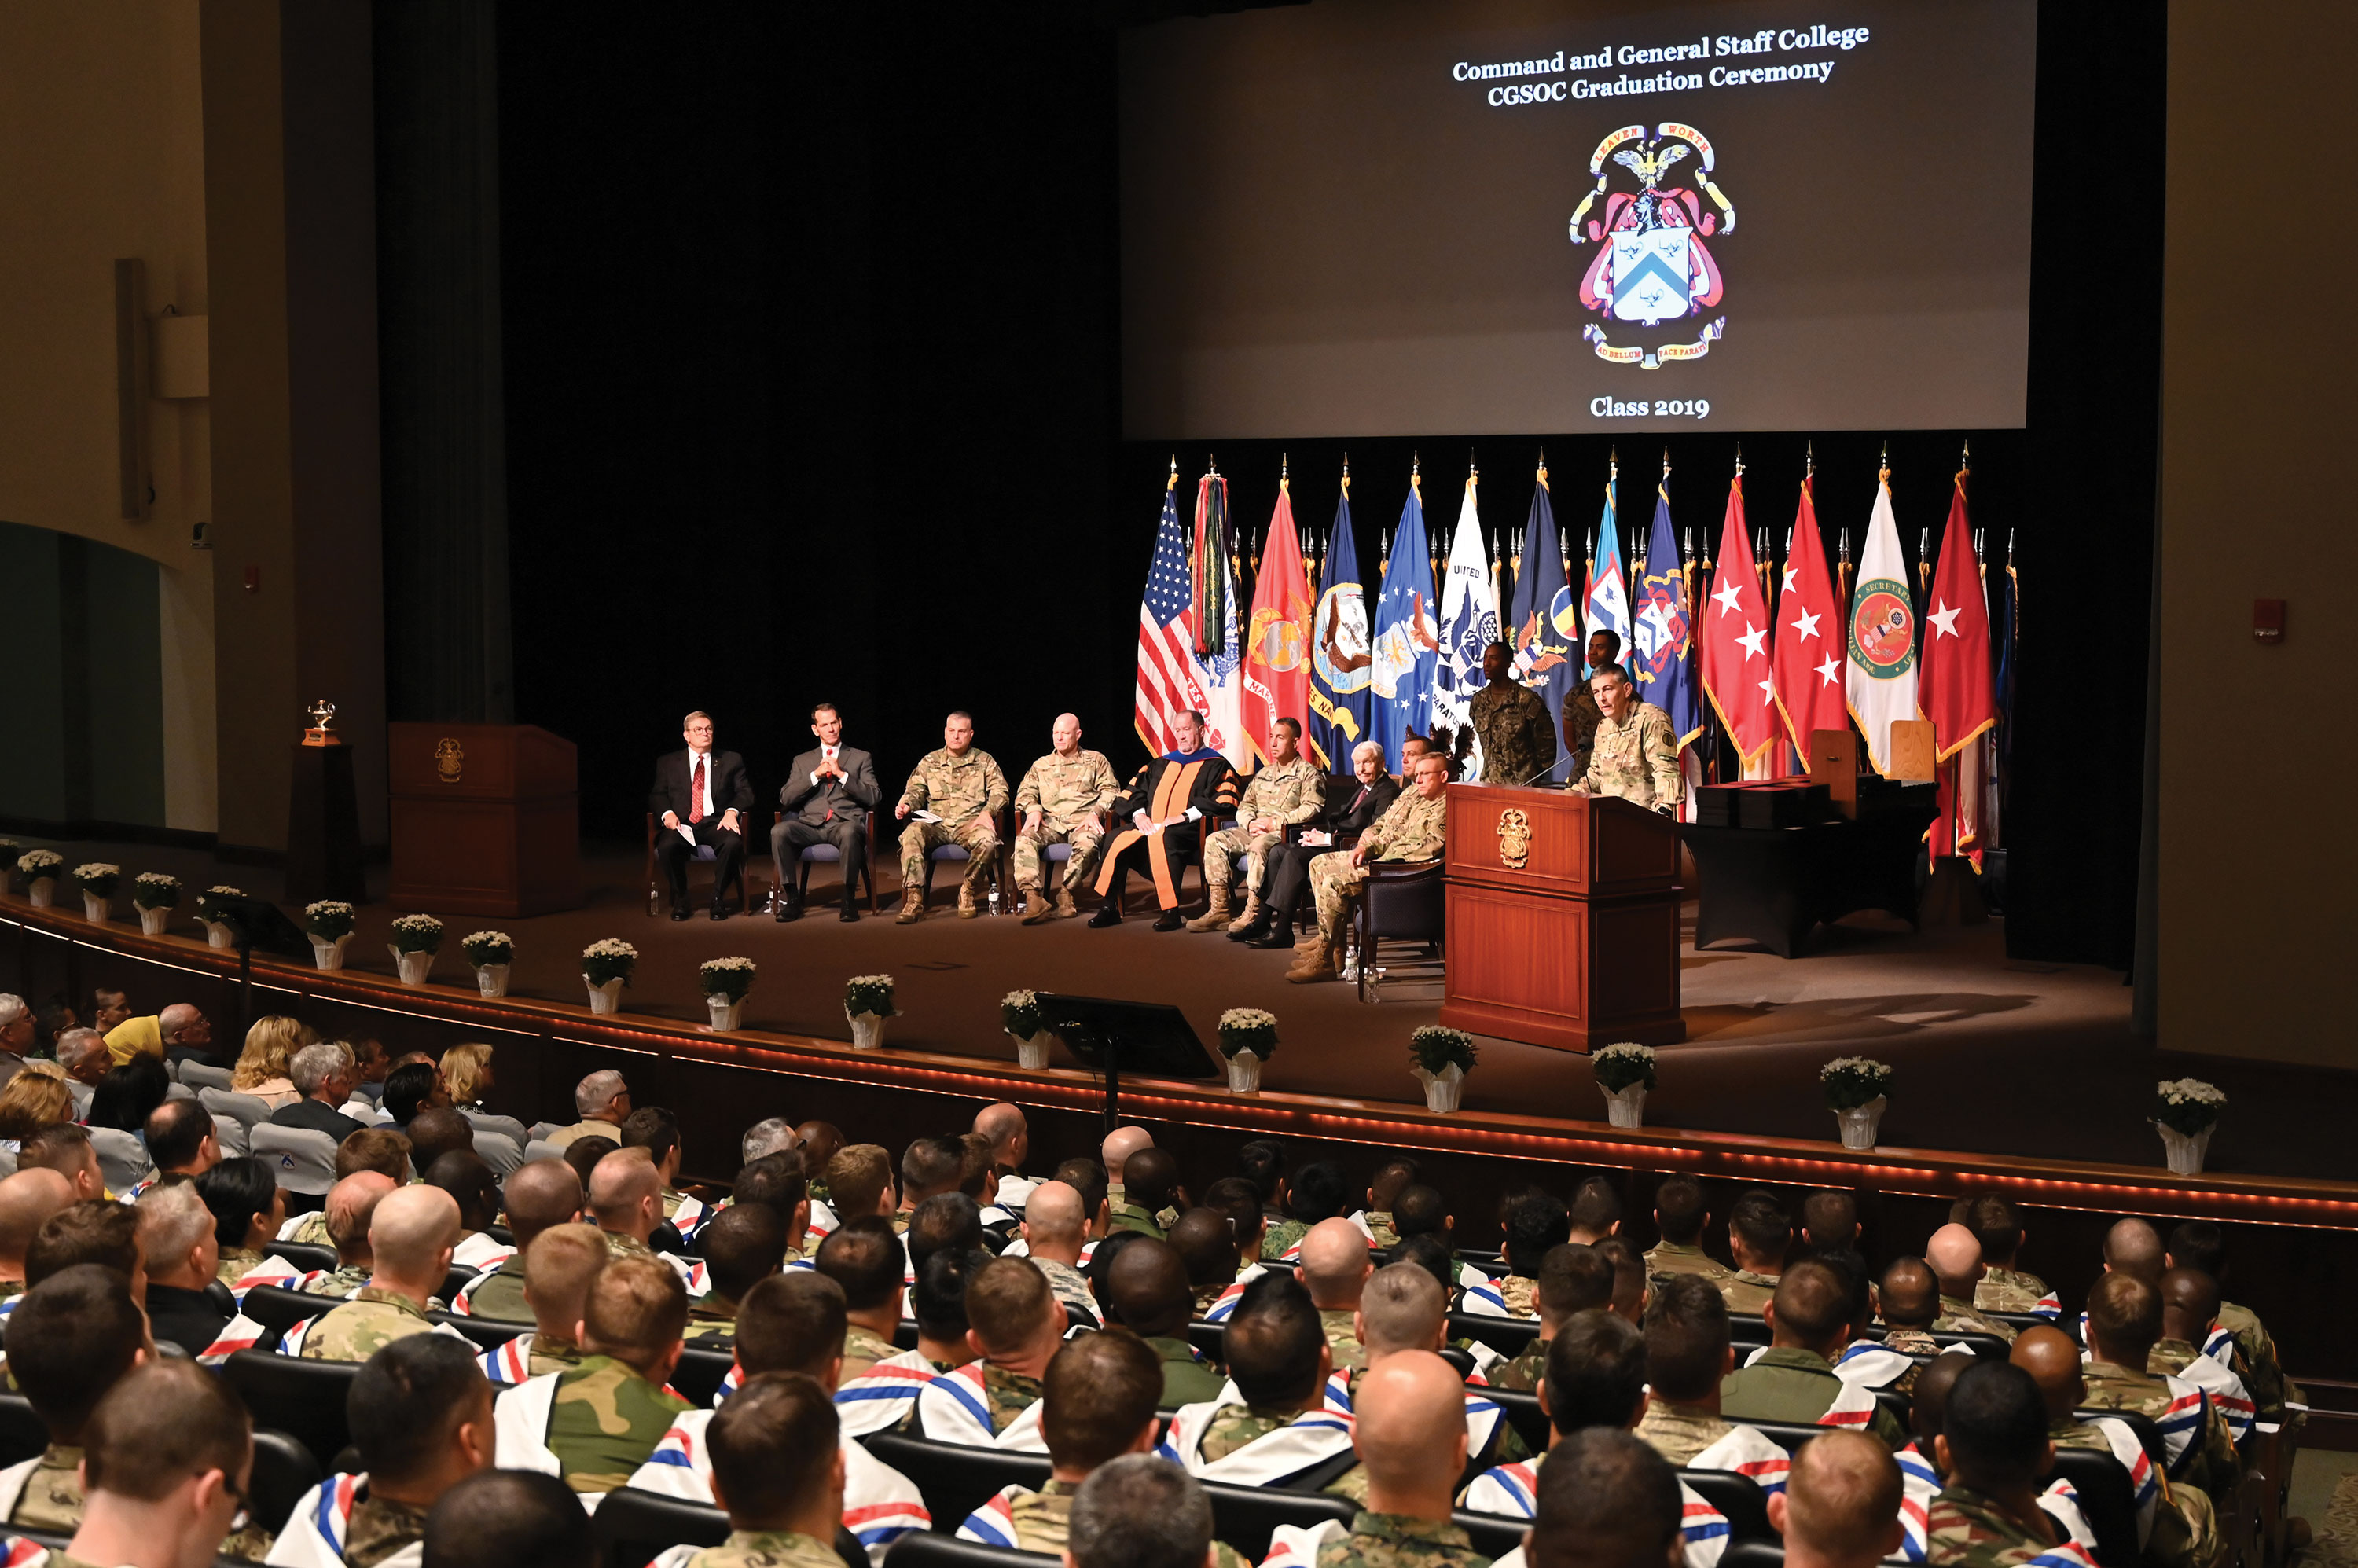 General Stephen J. Townsend, commanding general of the U.S. Army Training and Doctrine Command, delivers remarks at the graduation ceremony for the CGSOC Class of 2019 in the Lewis and Clark Center on Fort Leavenworth. (photo by Mark H. Wiggins)